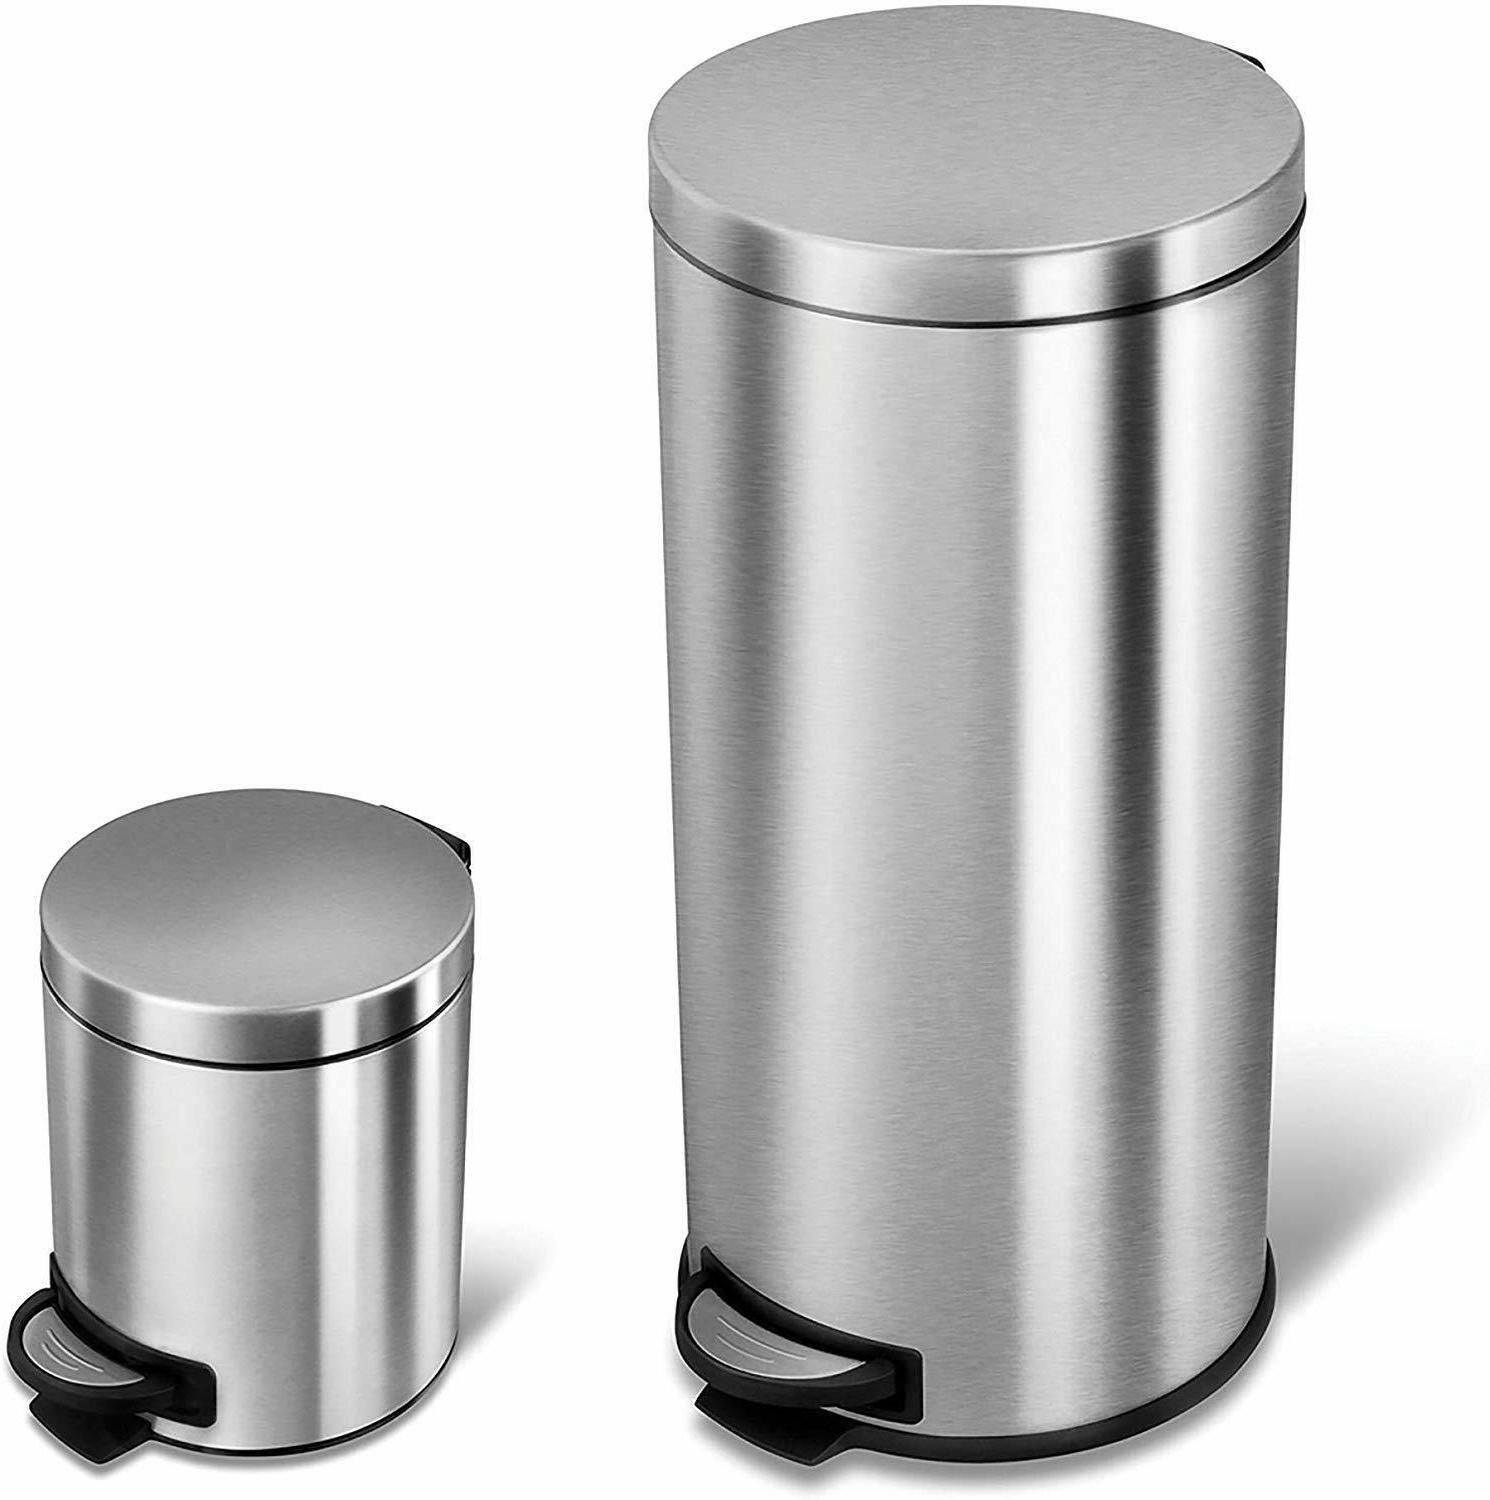 NINESTARS CB-SOT-30-1/5-1 Step-on Trash Can Combo Set, 8 Gal